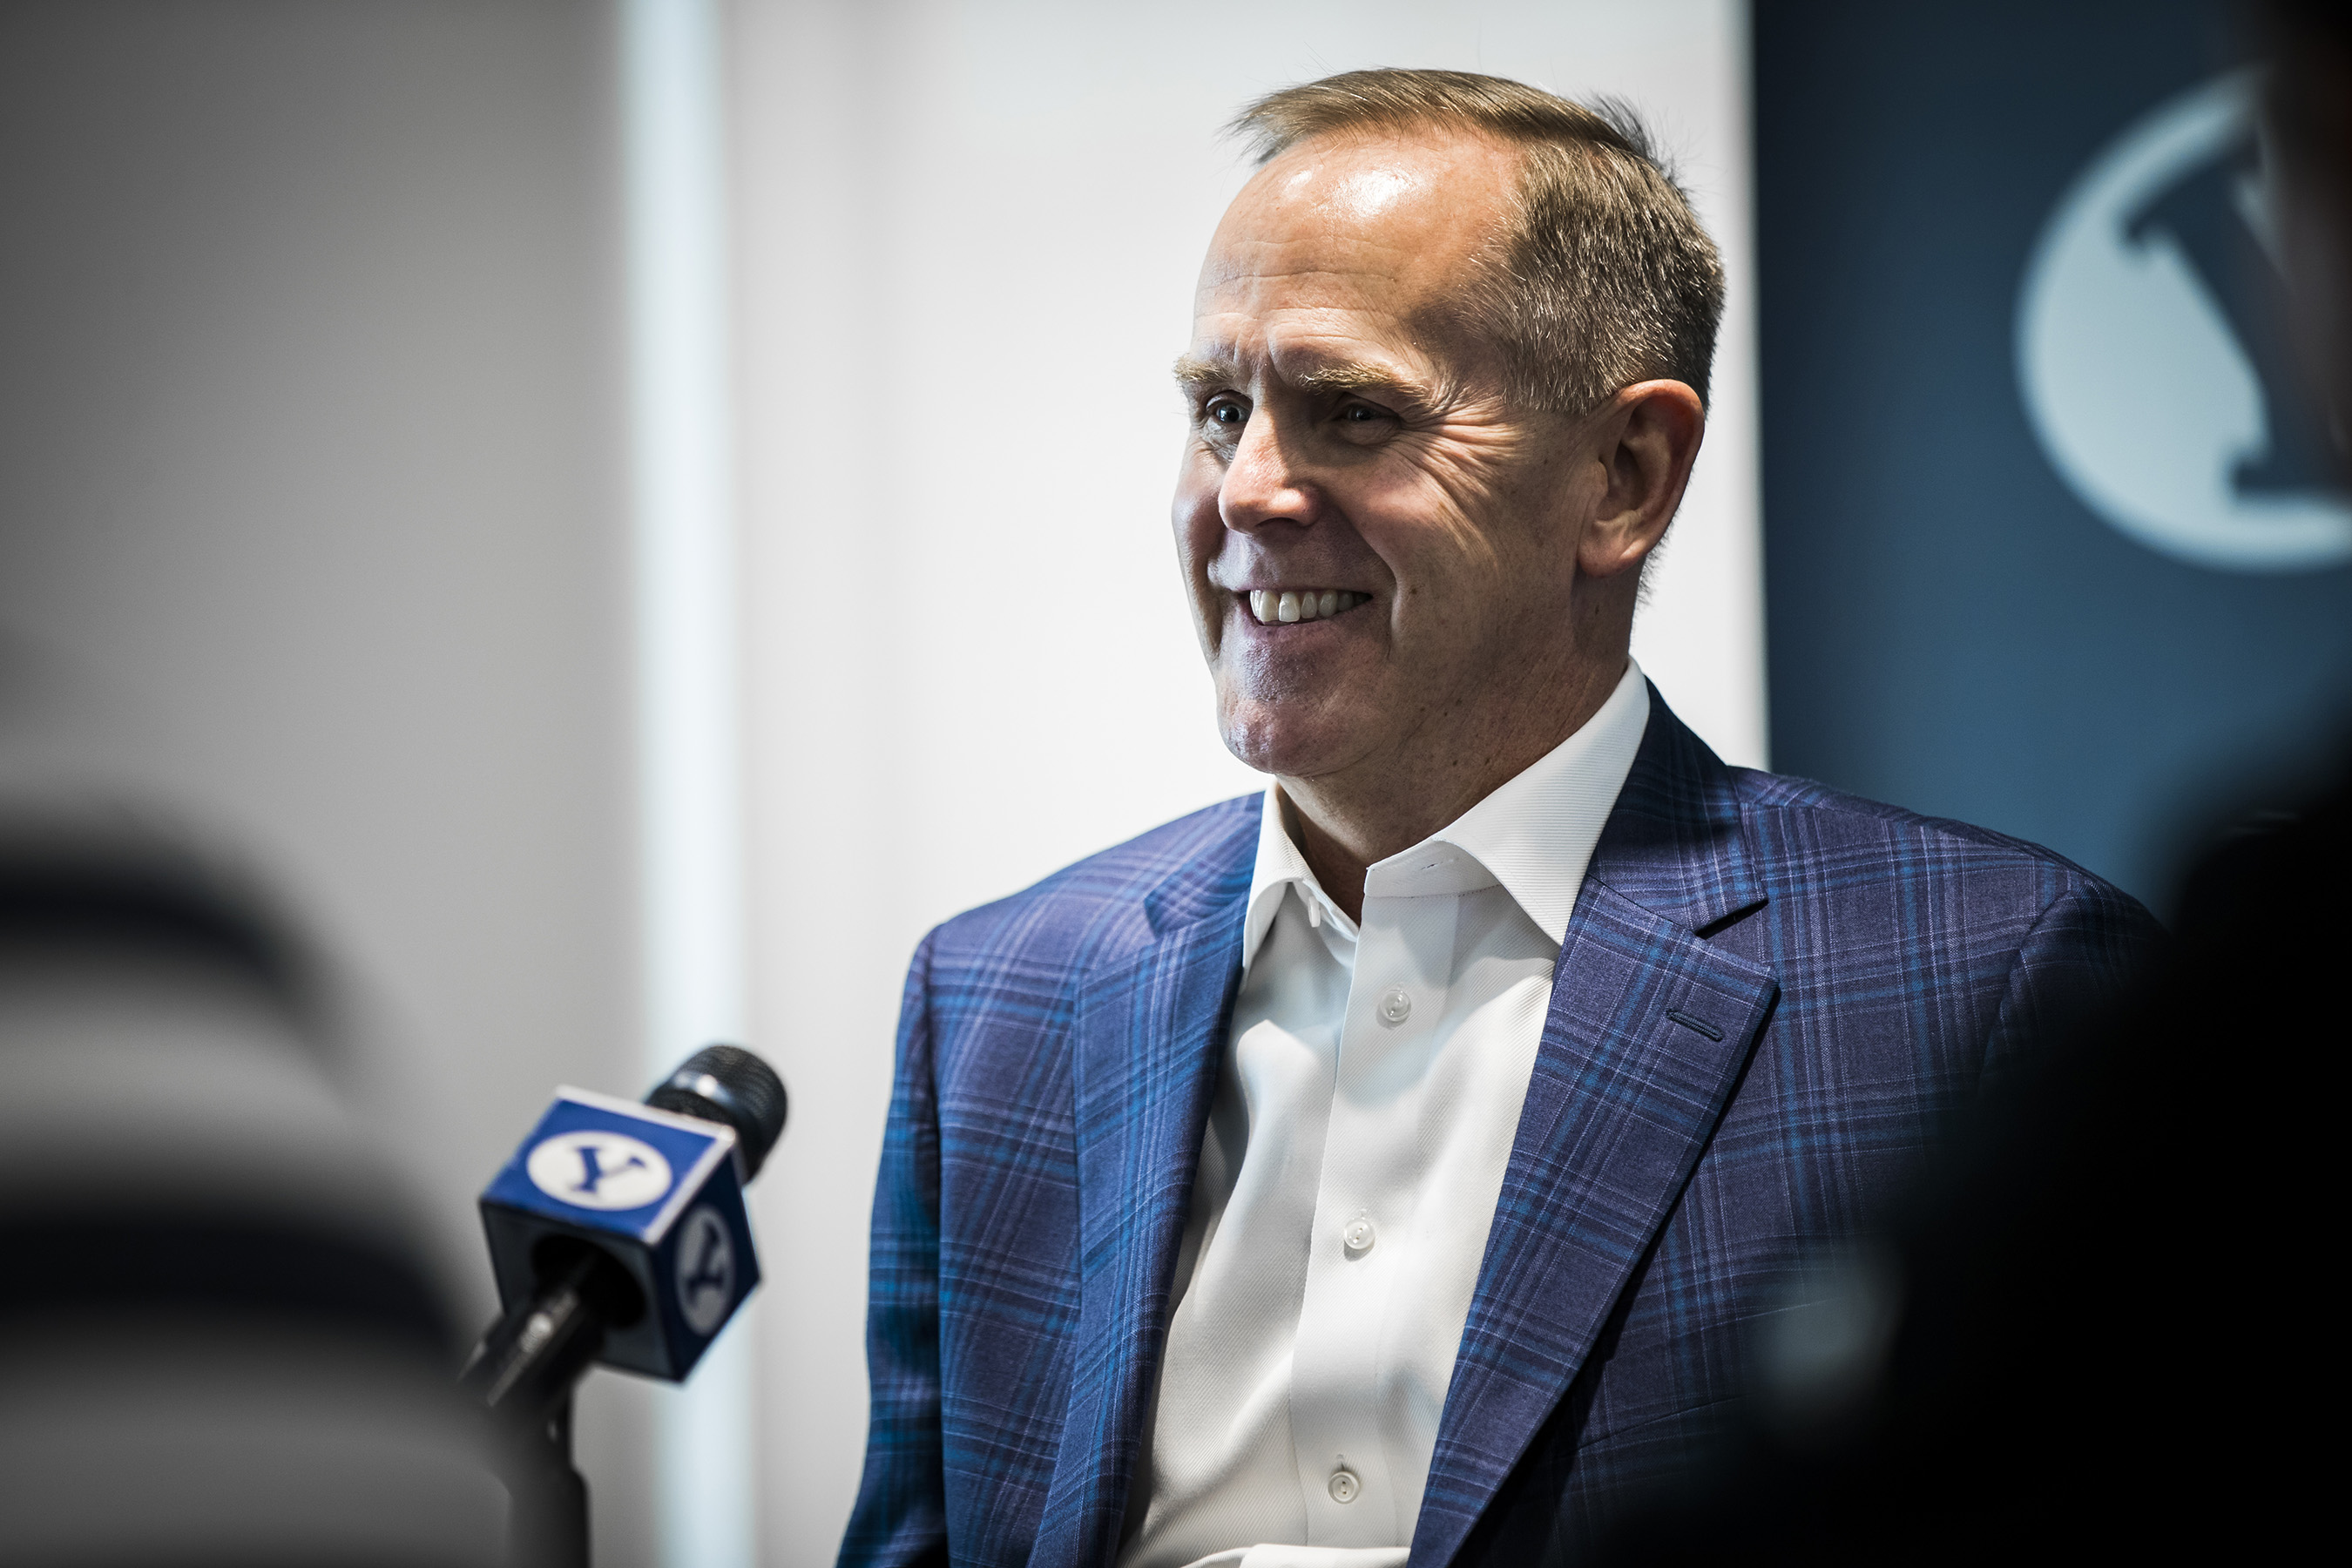 BYU athletic director Tom Holmoe meets with reporters for his semiannual media Q&A roundtable in Provo on Wednesday, Jan. 24, 2018. Last week, Holmoe held a virtual roundtable via Zoom to field reporters questions.